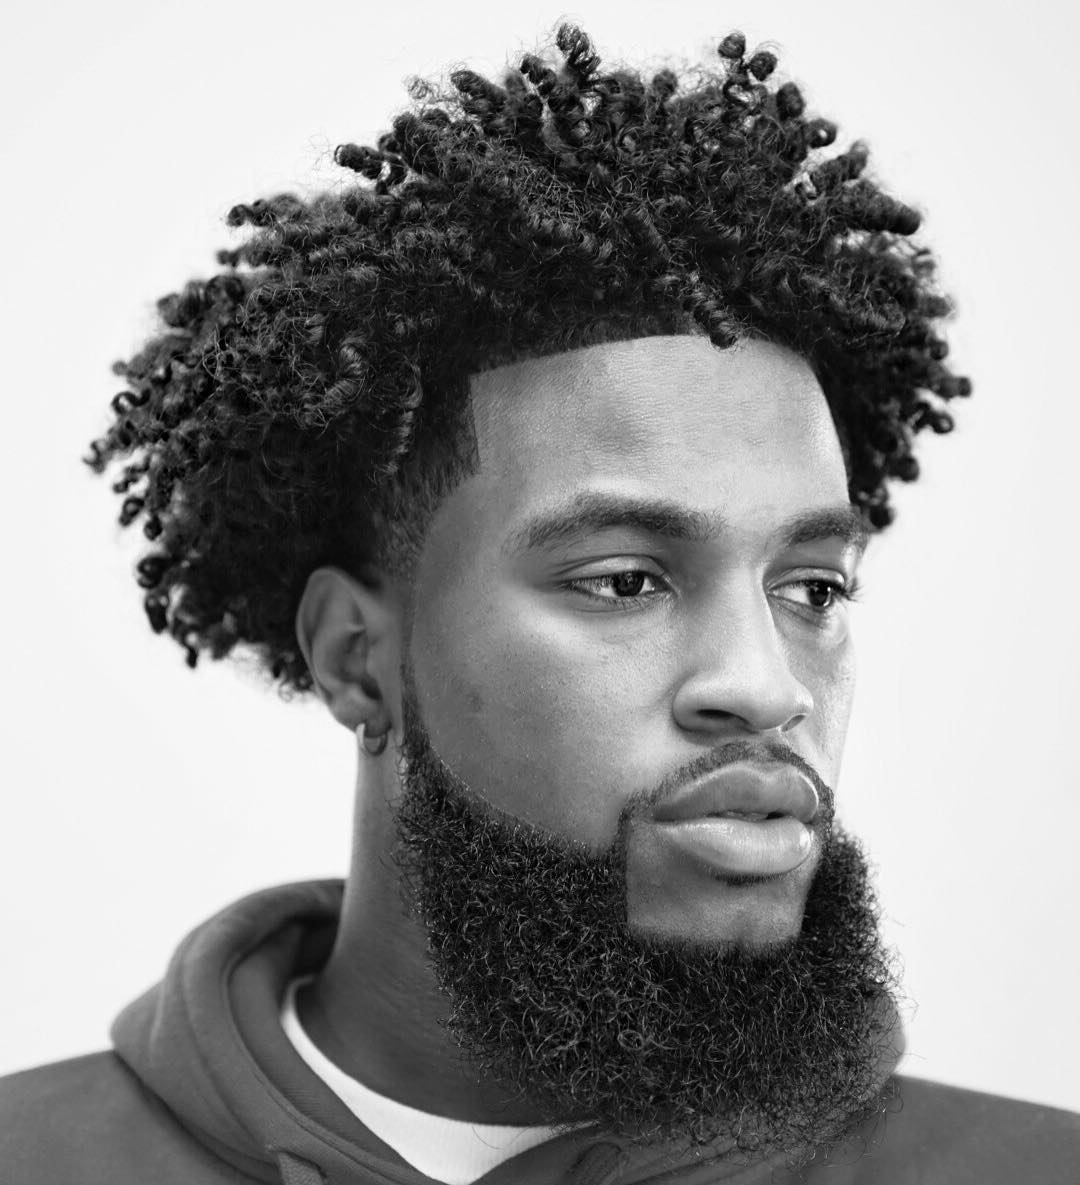 47 Hairstyles & Haircuts For Black Men: Fresh Styles For 2021 Black Men Medium Hairstyles